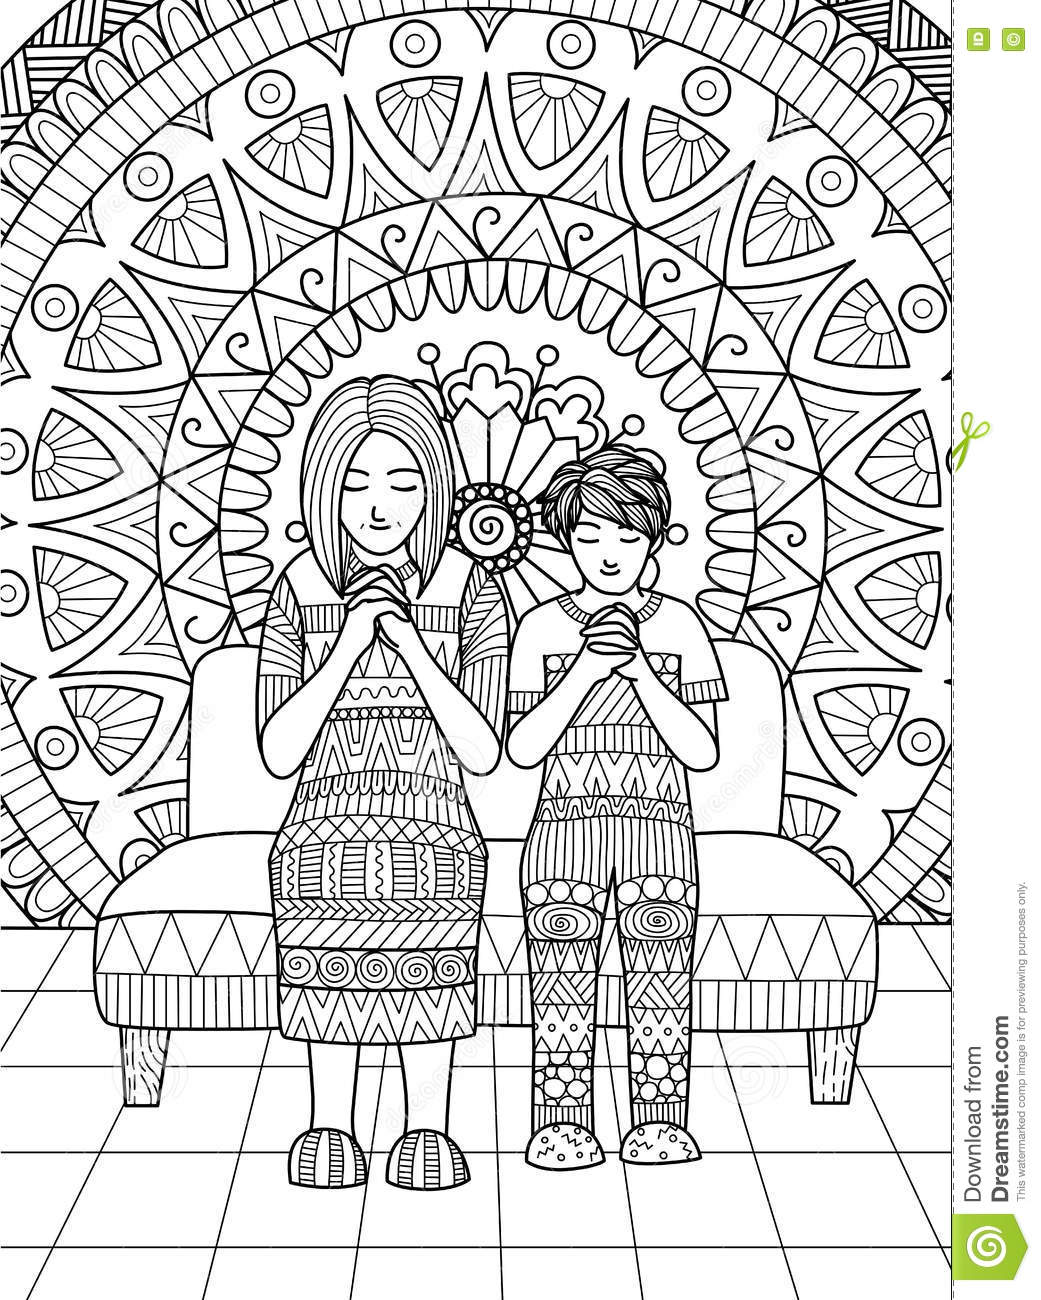 The coloring book clean - Clean Lines Doodle Design Of Mom And Her Son Praying Together For Adult Coloring